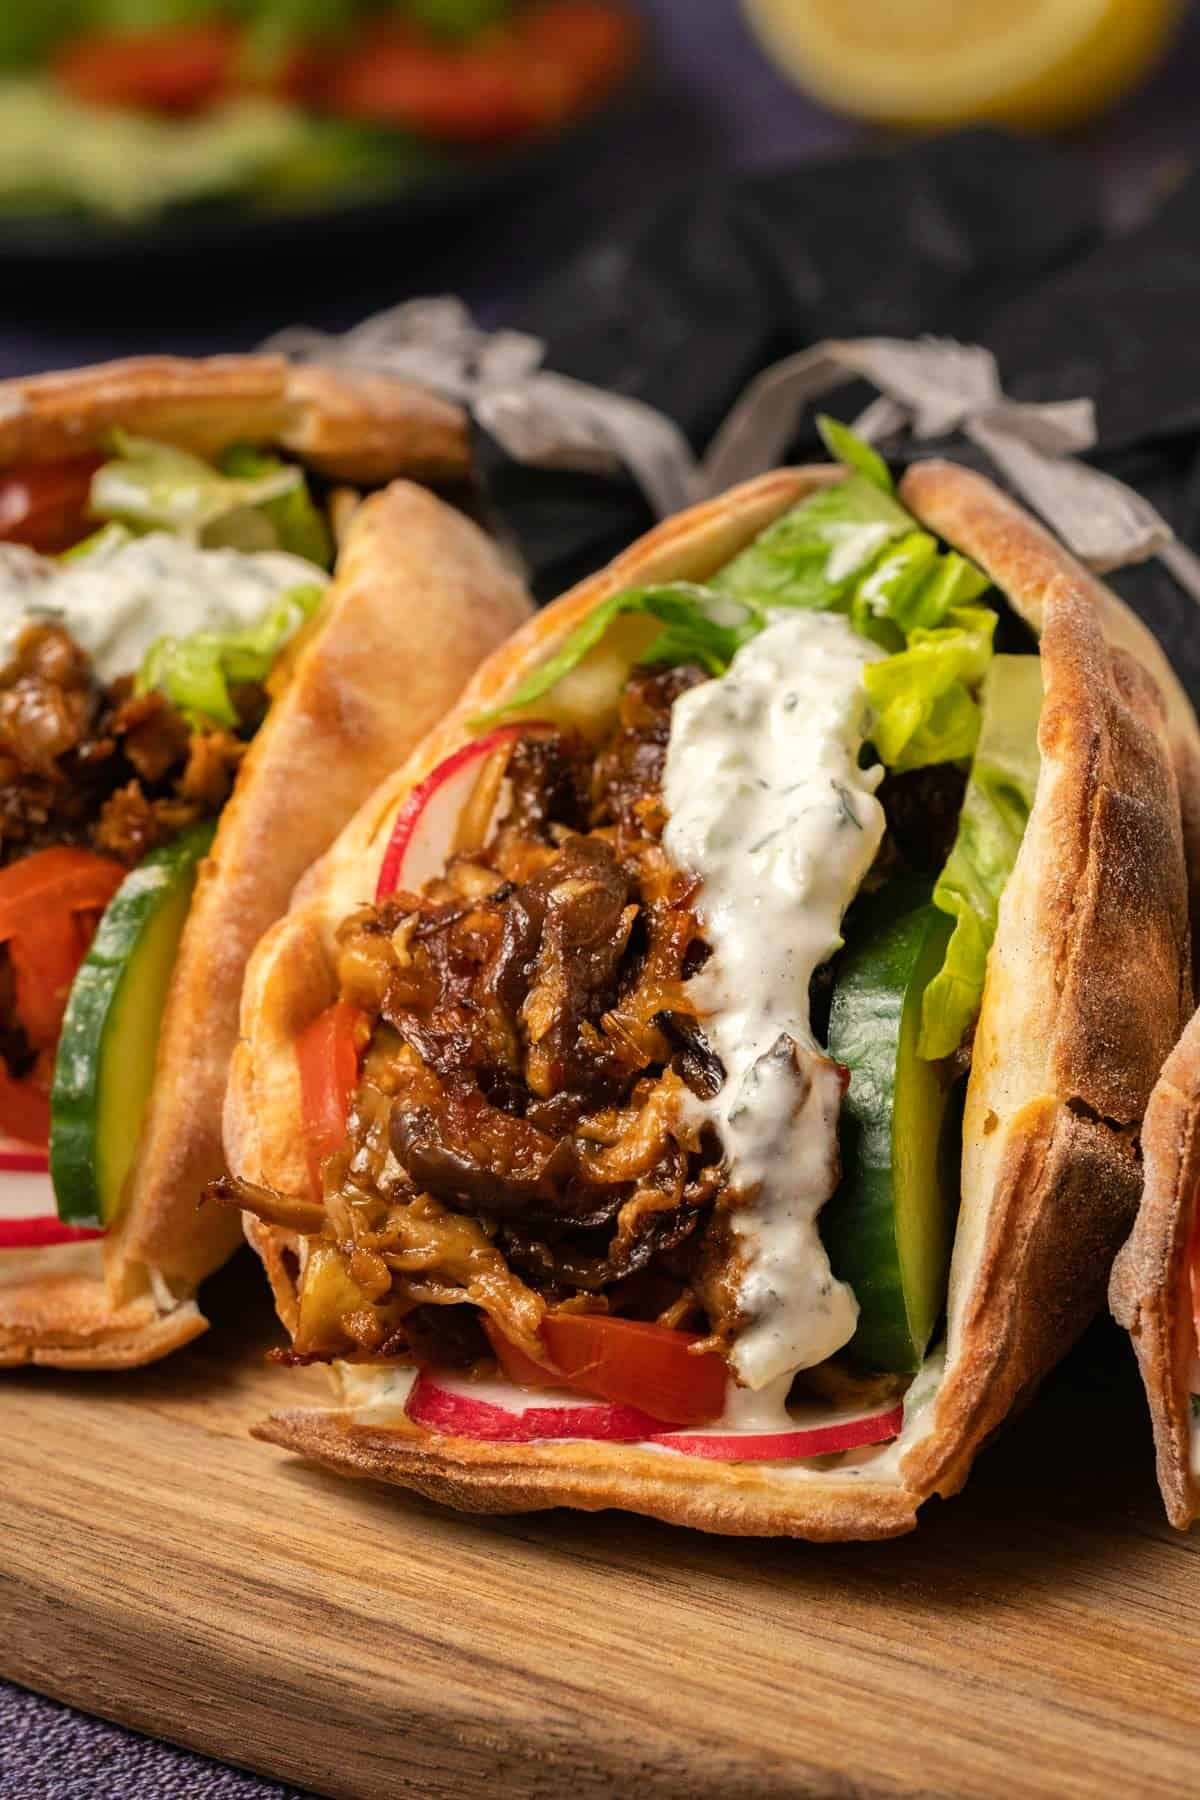 Vegan gyros with tzatziki on a wooden board.